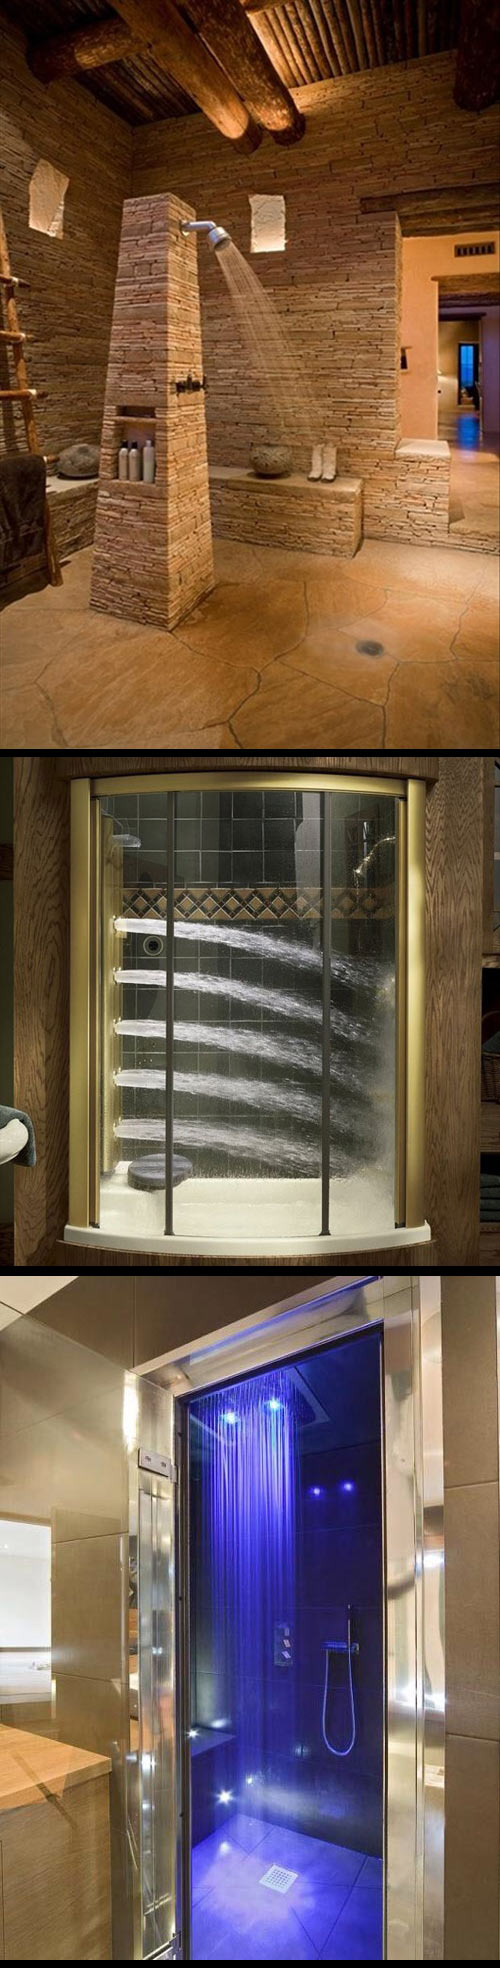 cool-different-types-shower